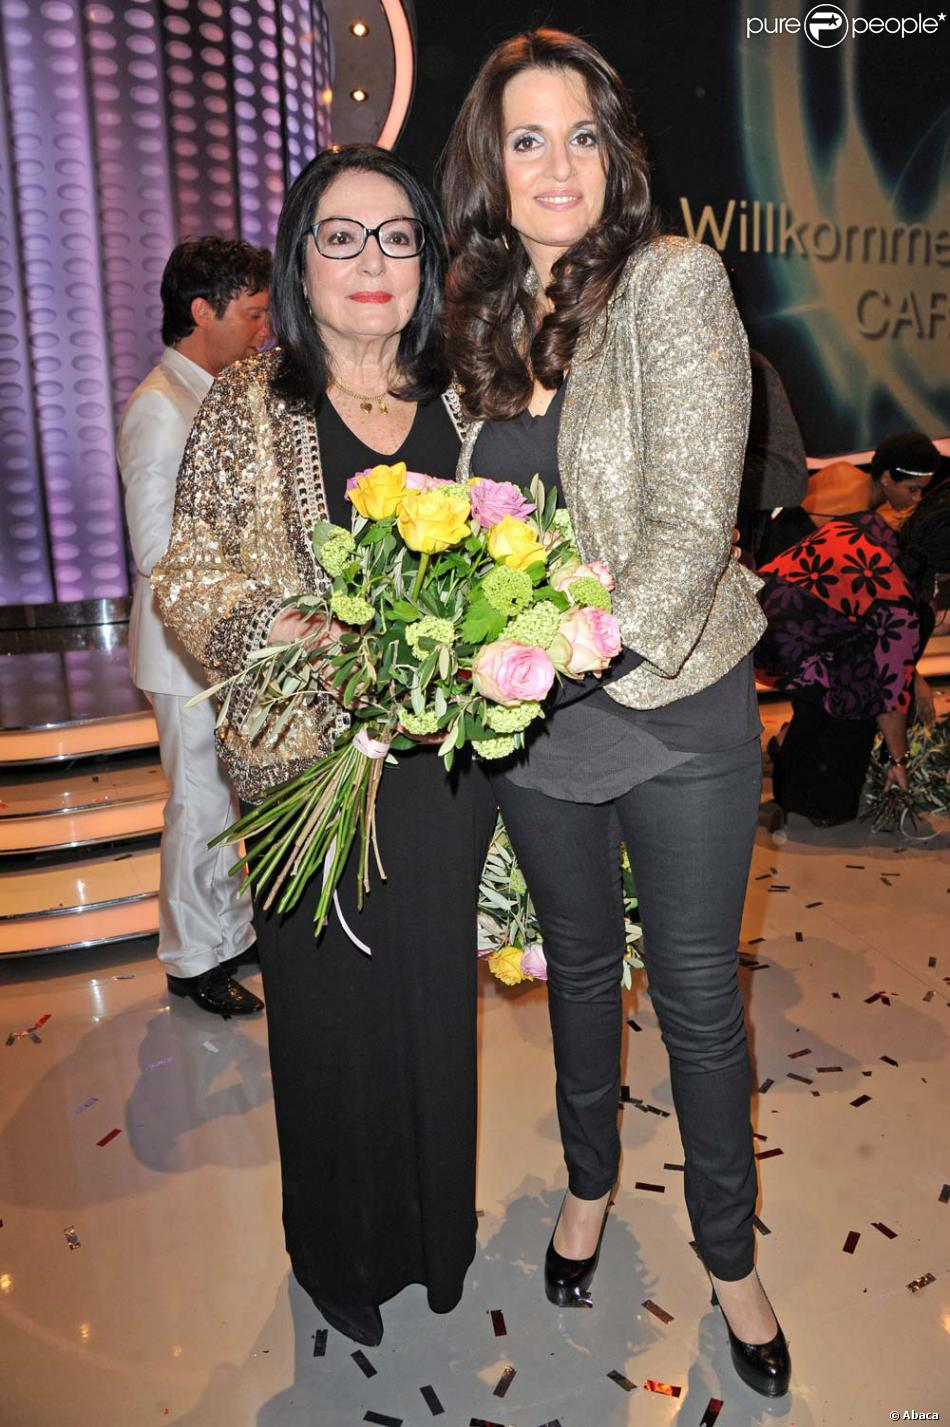 Nana Mouskouri Et Sa Fille : mouskouri, fille, Mouskouri, Fille, Lenou, Plateau, L'émission, Willkommen, Carmen, Nebel, Berlin,, 2012., Purepeople